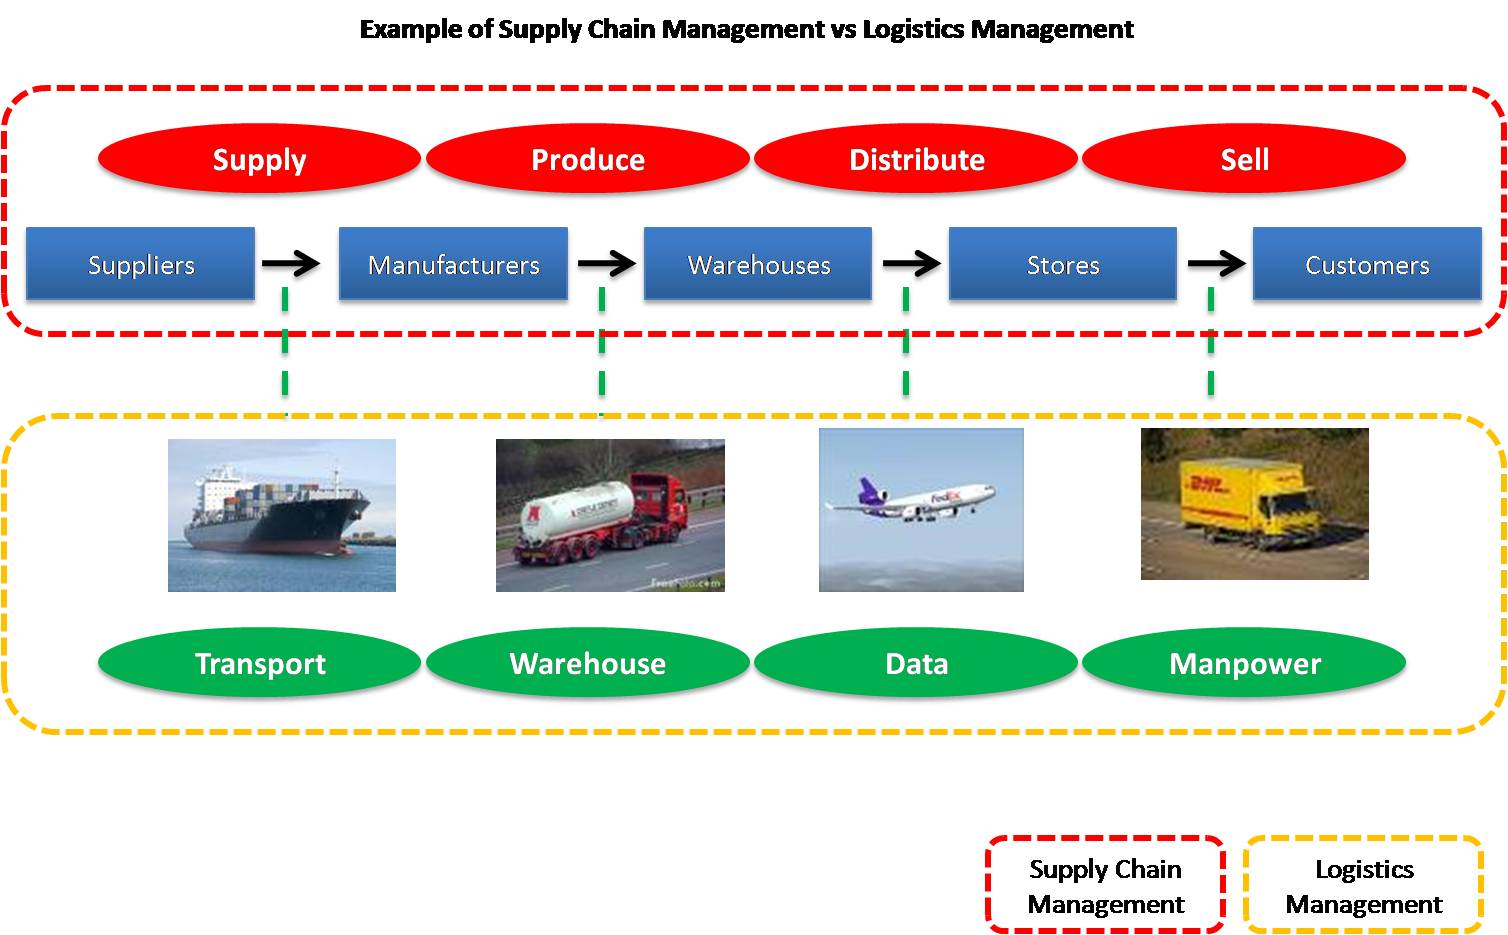 supply chain management ups Ryder's supply chain management and logistics solutions combine warehouse, distribution, and transportation capabilities to help reduce costs and grow.